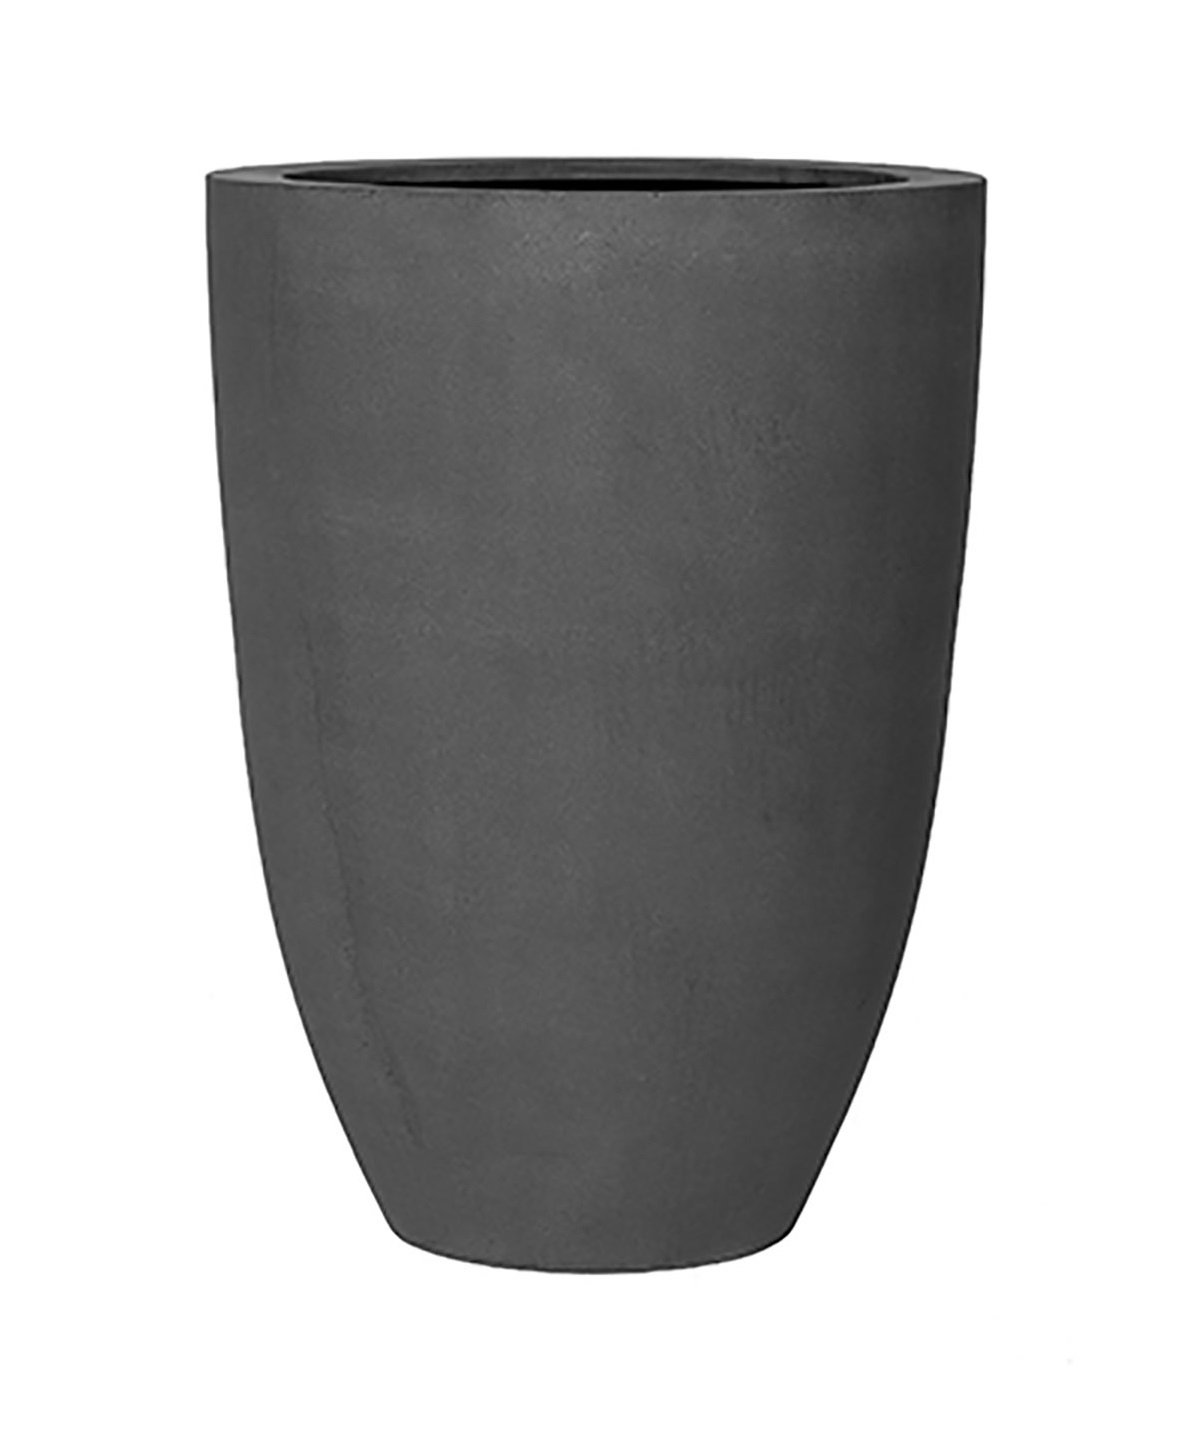 Ben XL Tall Gray Flower Planter Tapered Cylinder Fiberstone Vase 28'' H x 20.5'' W - By Pottery Pots